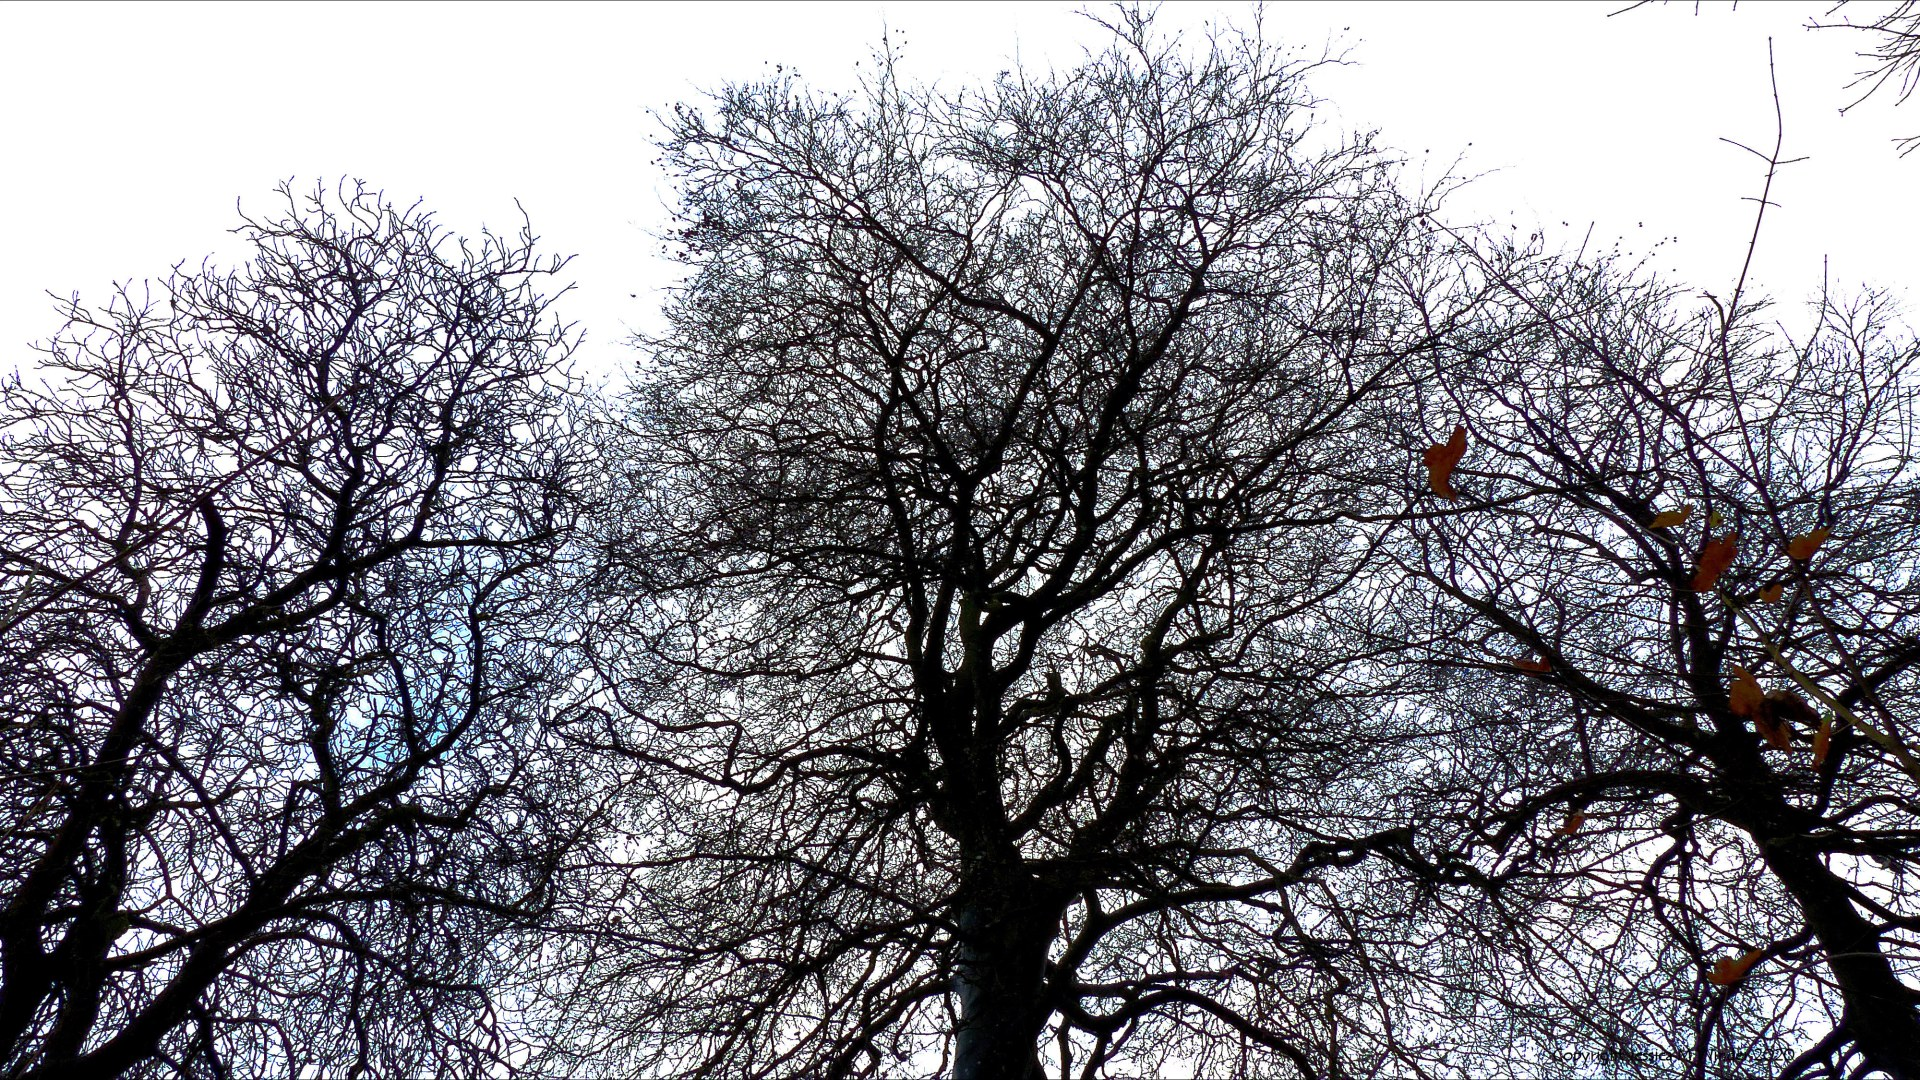 Natural patterns of branches in winter trees